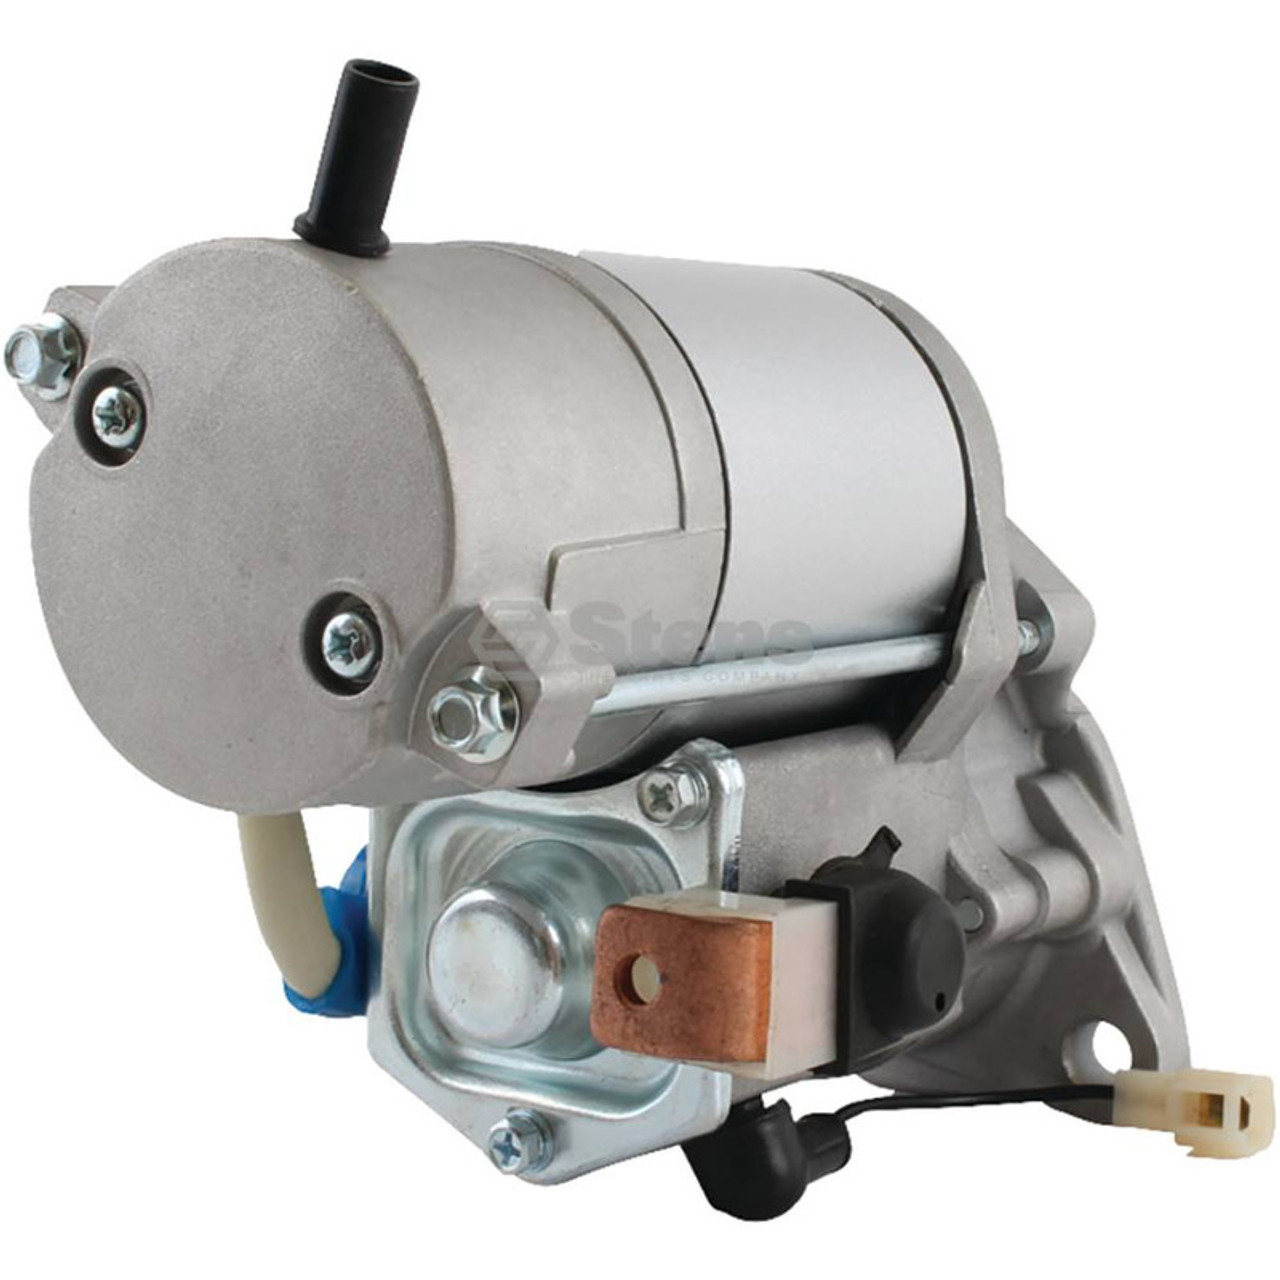 Electric Starter for Case 560 trencher 126895A1, 200117A1